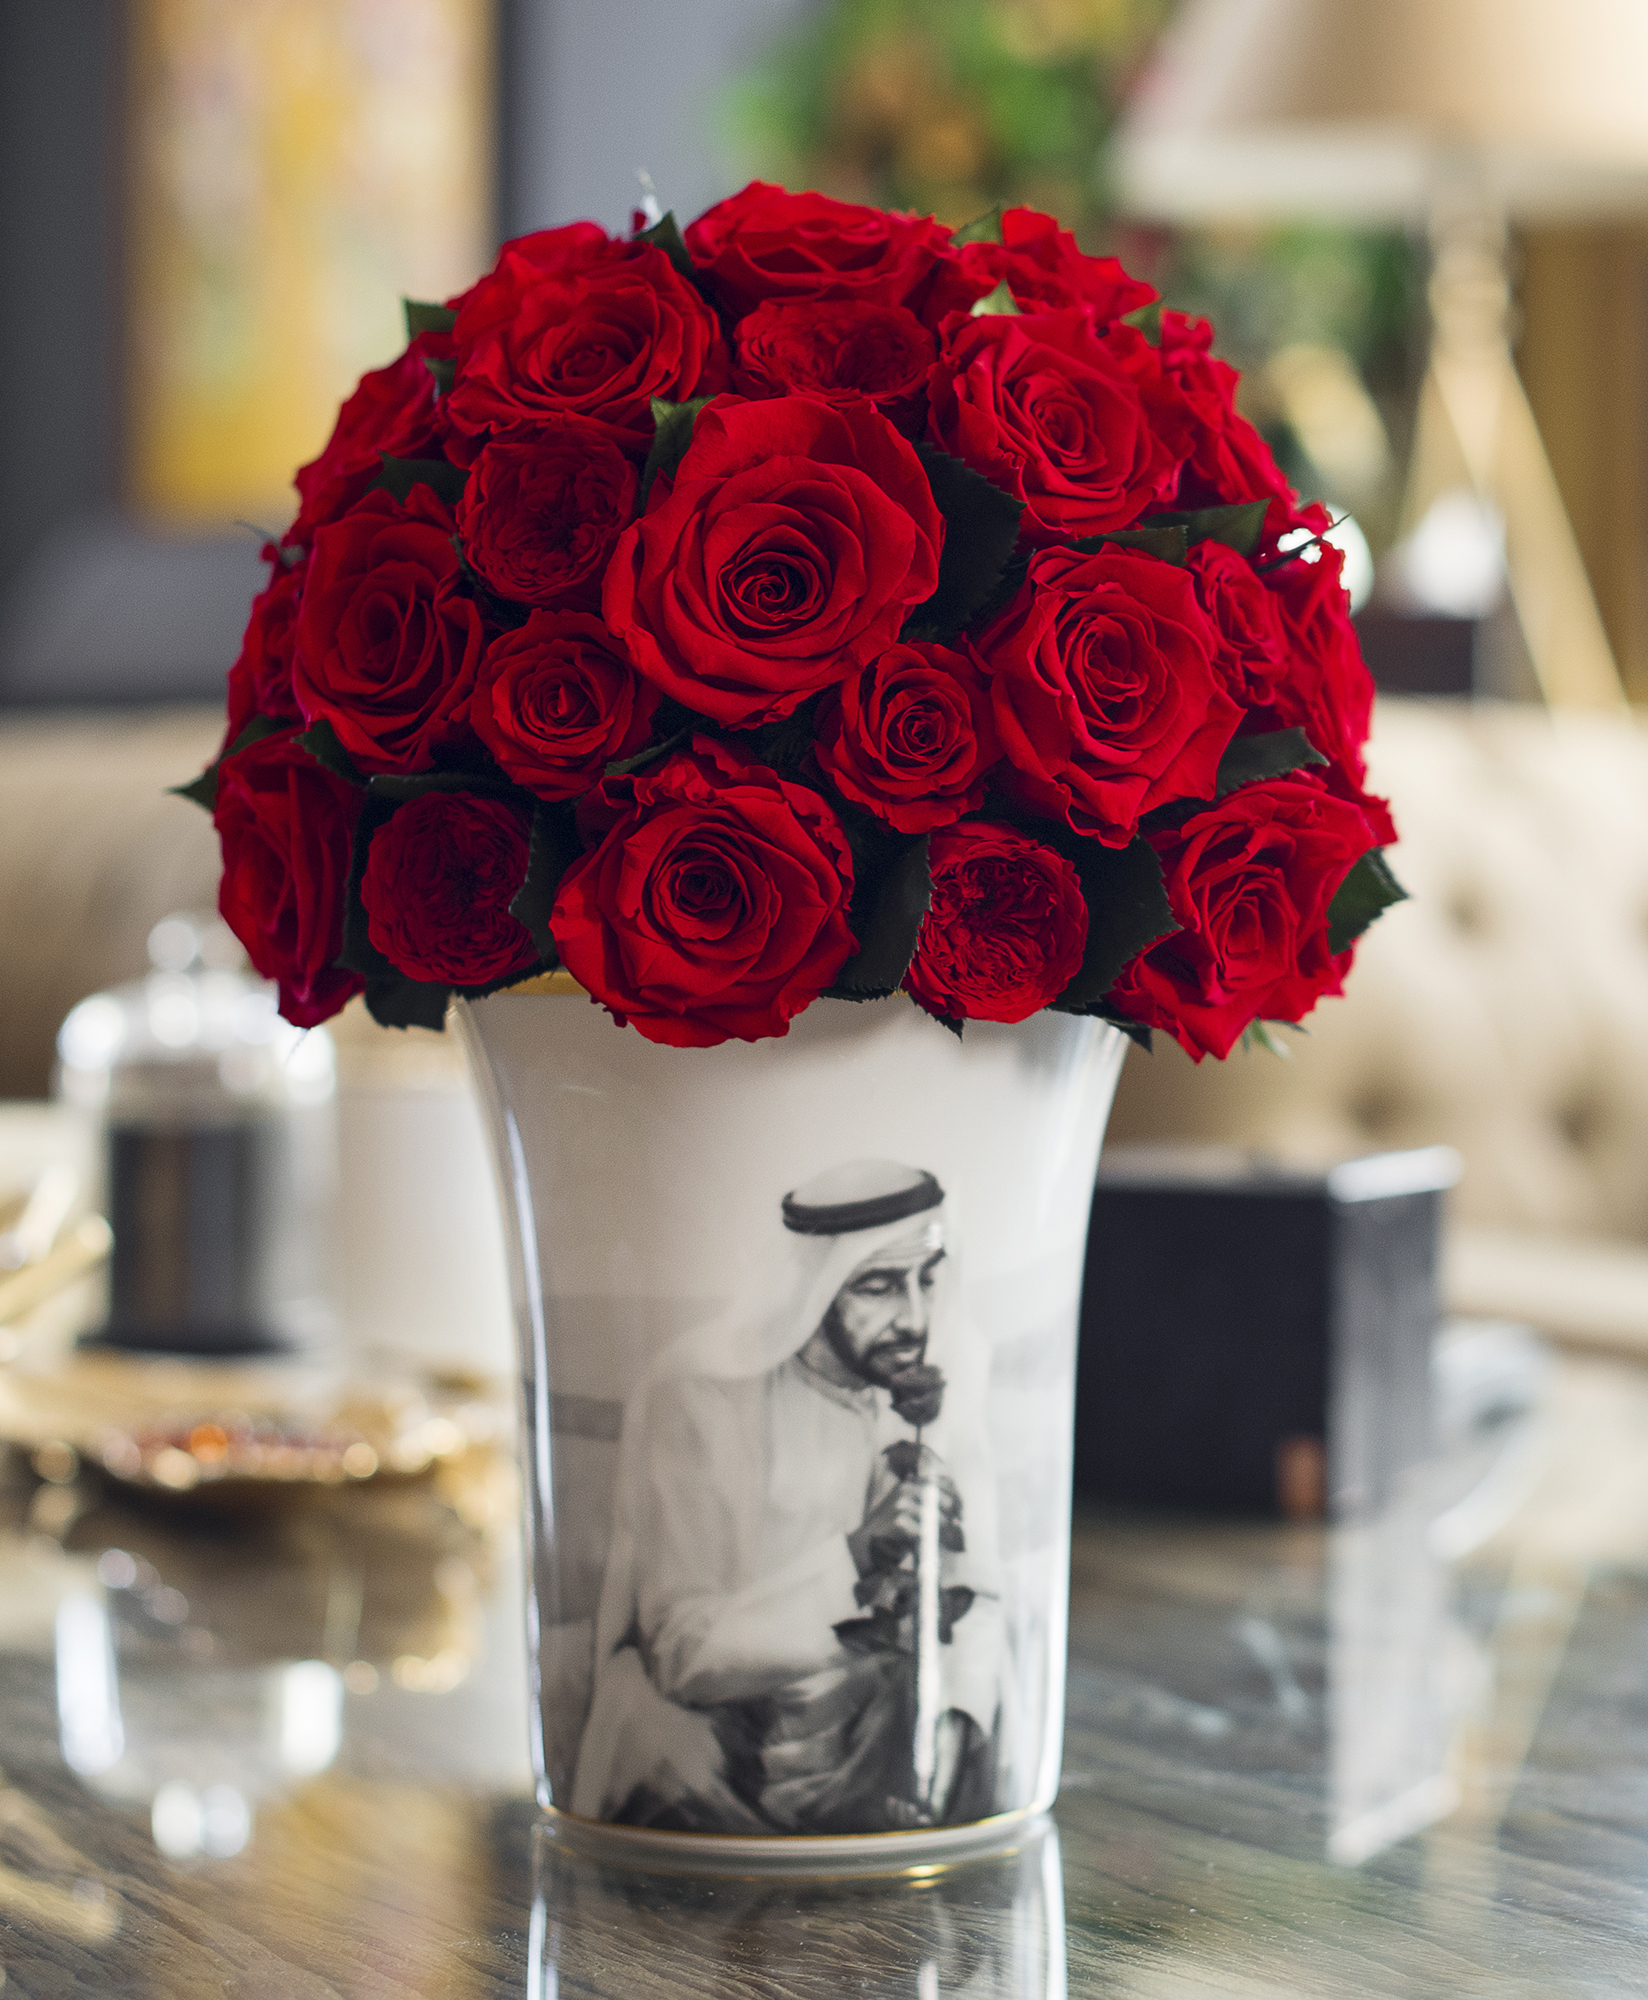 The Rose of Zayed